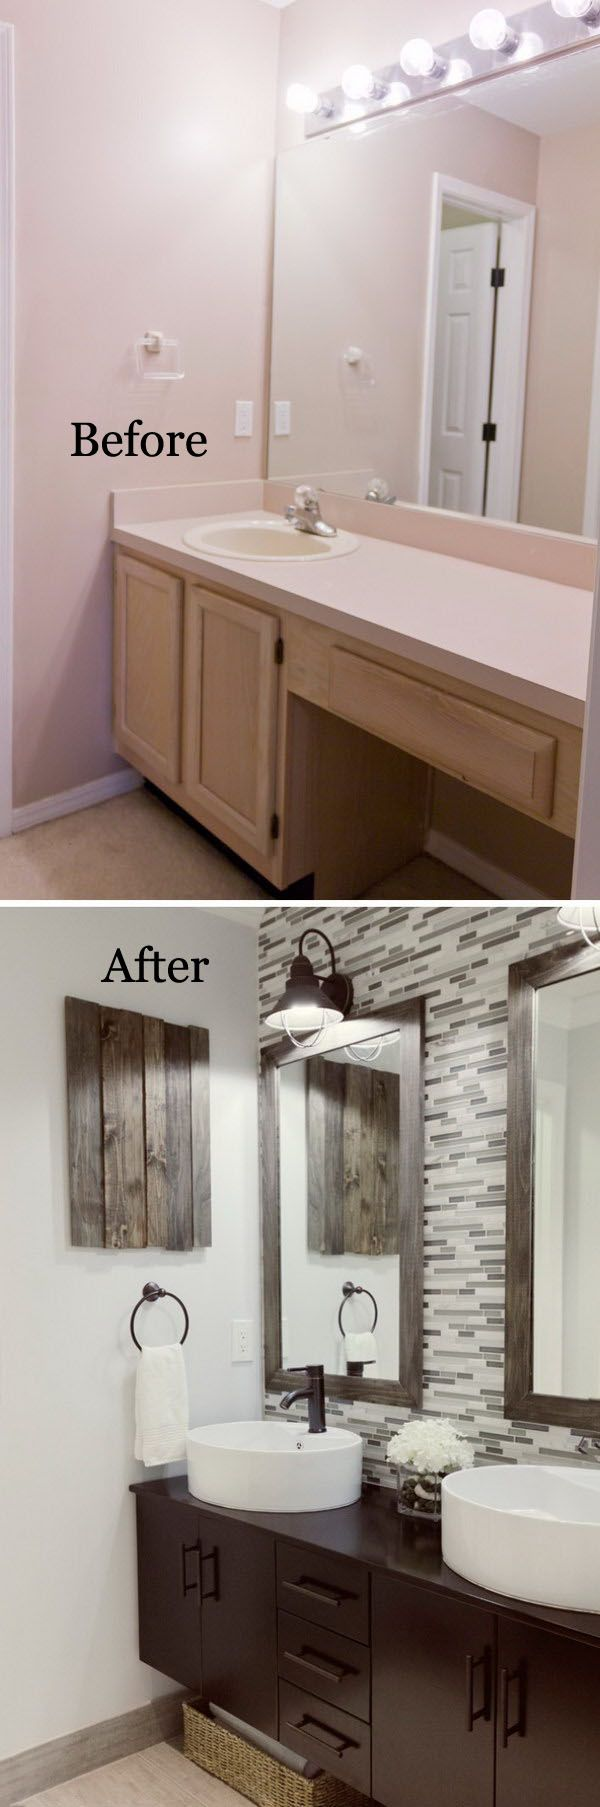 Best Budget Friendly Bathroom Makeover Ideas And Designs For - Bathroom updates on a budget